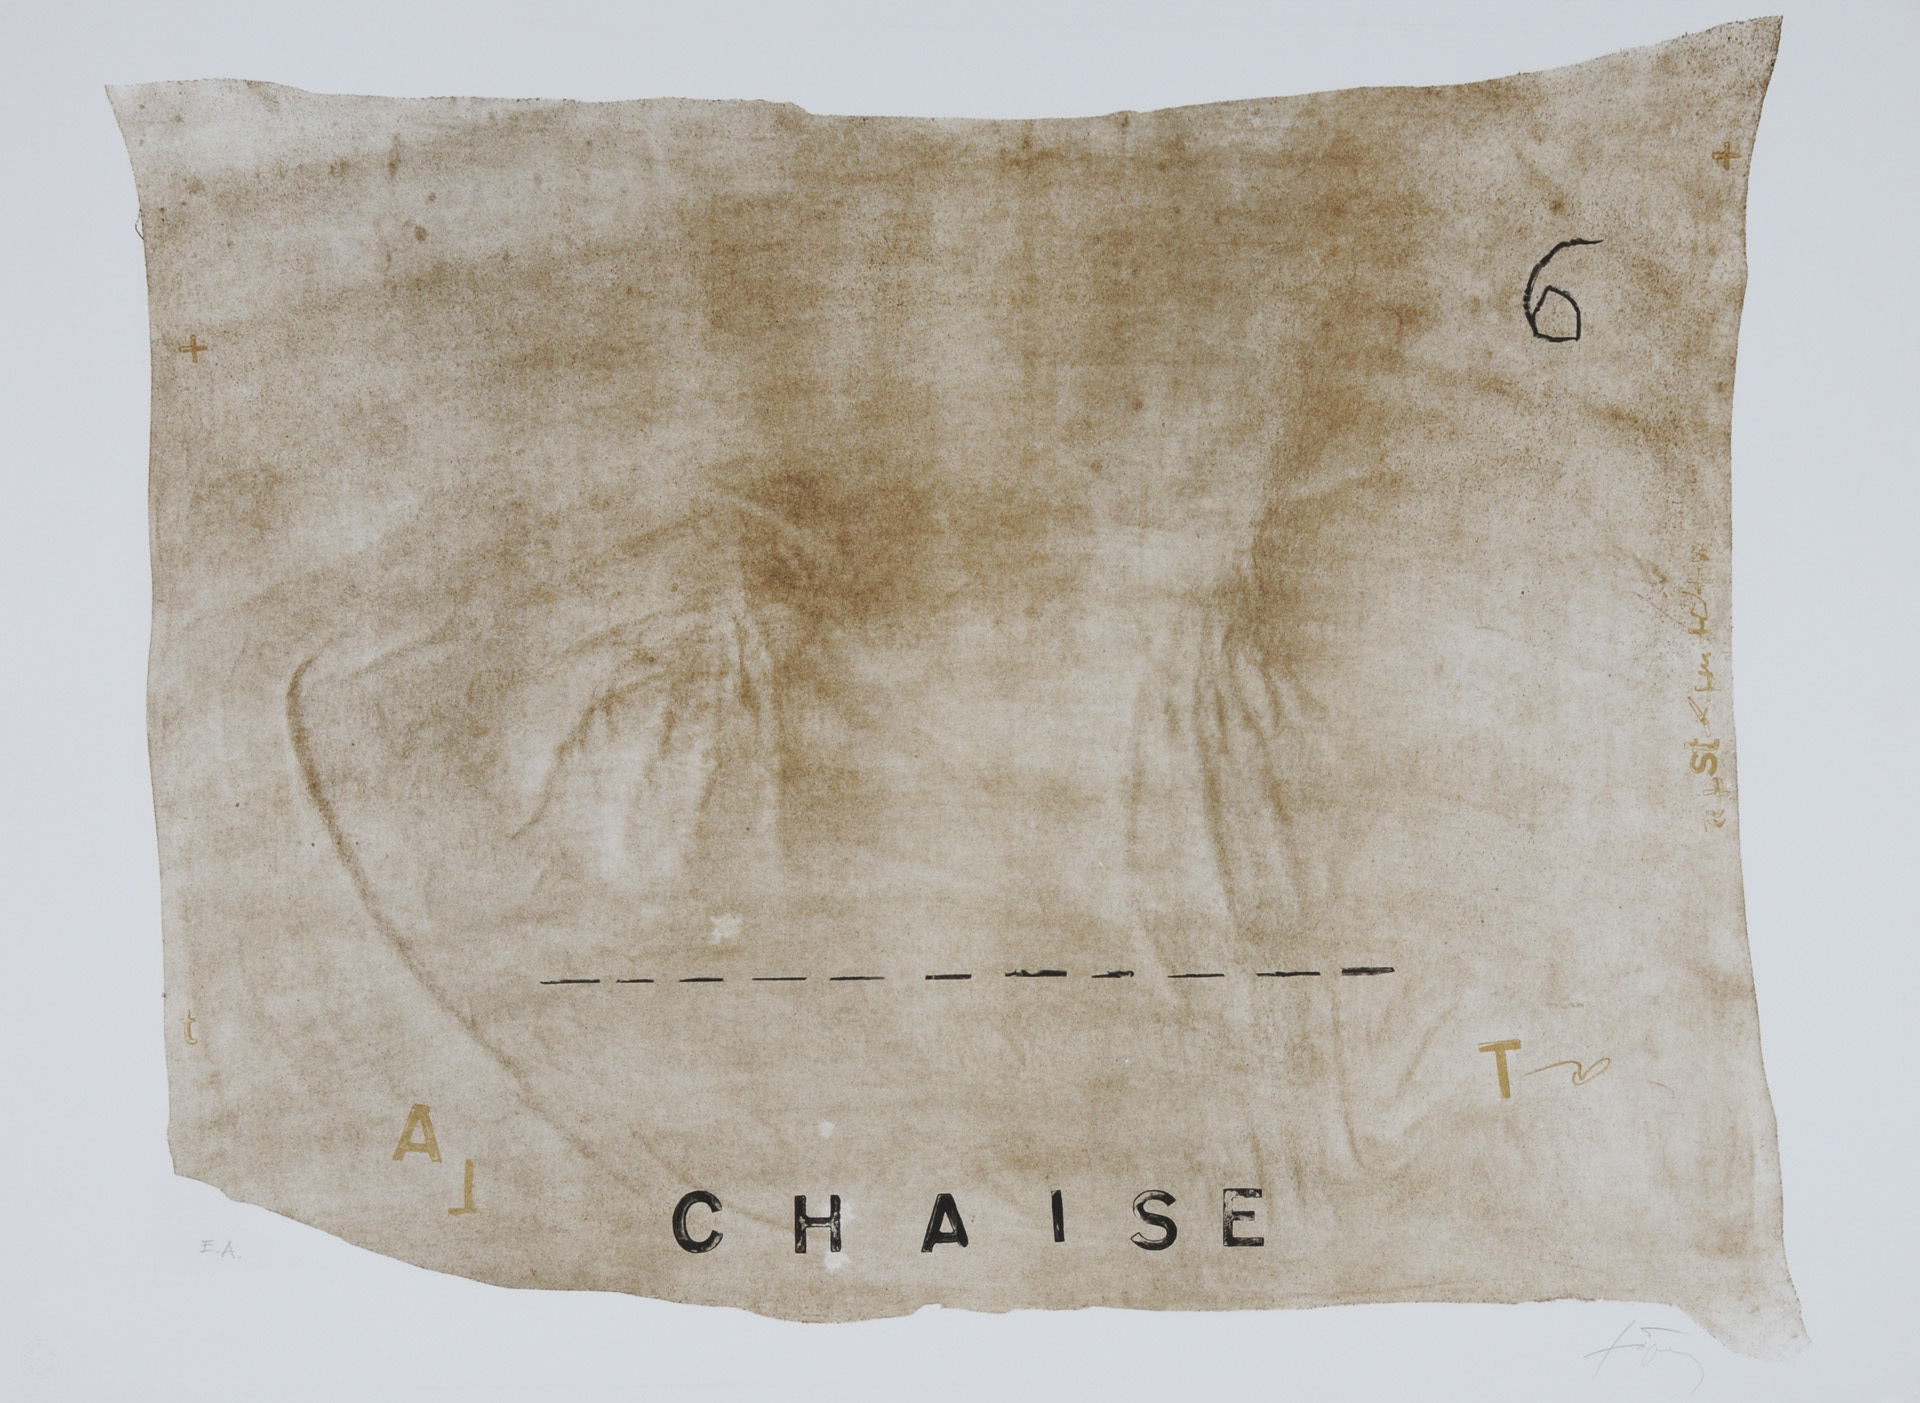 """Tàpies Antoni, Chaise, from """"Variations"""""""